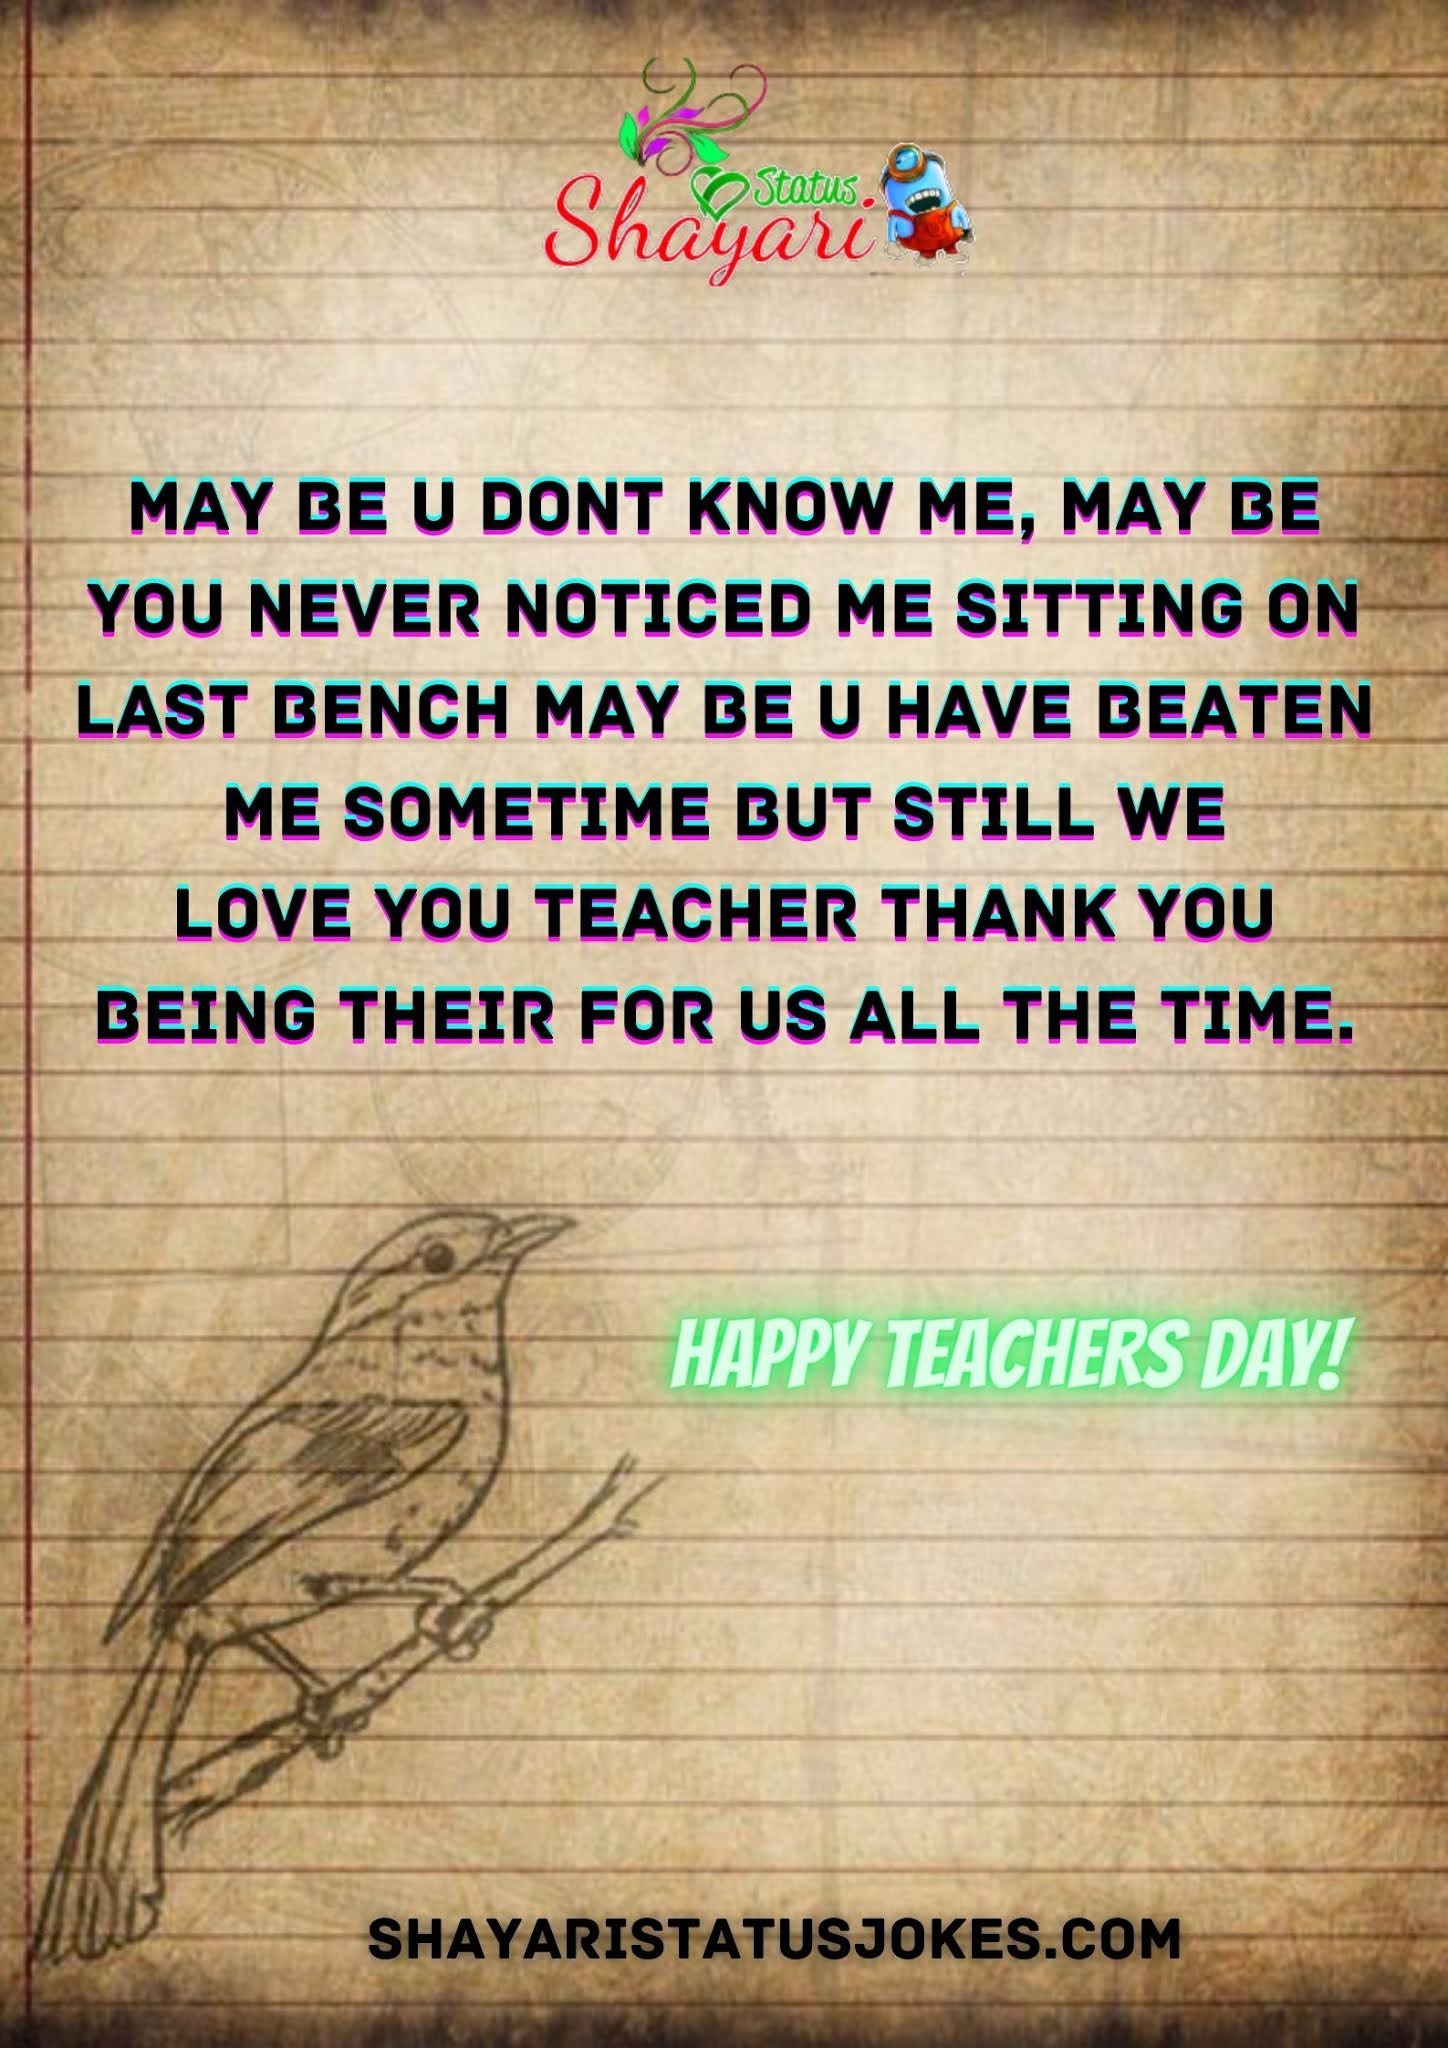 Teacher Day thoughts and shayari for childhood teachers day shayari in urdu teachers day shayari in english teacher day shayari in hindi pdf shayari f